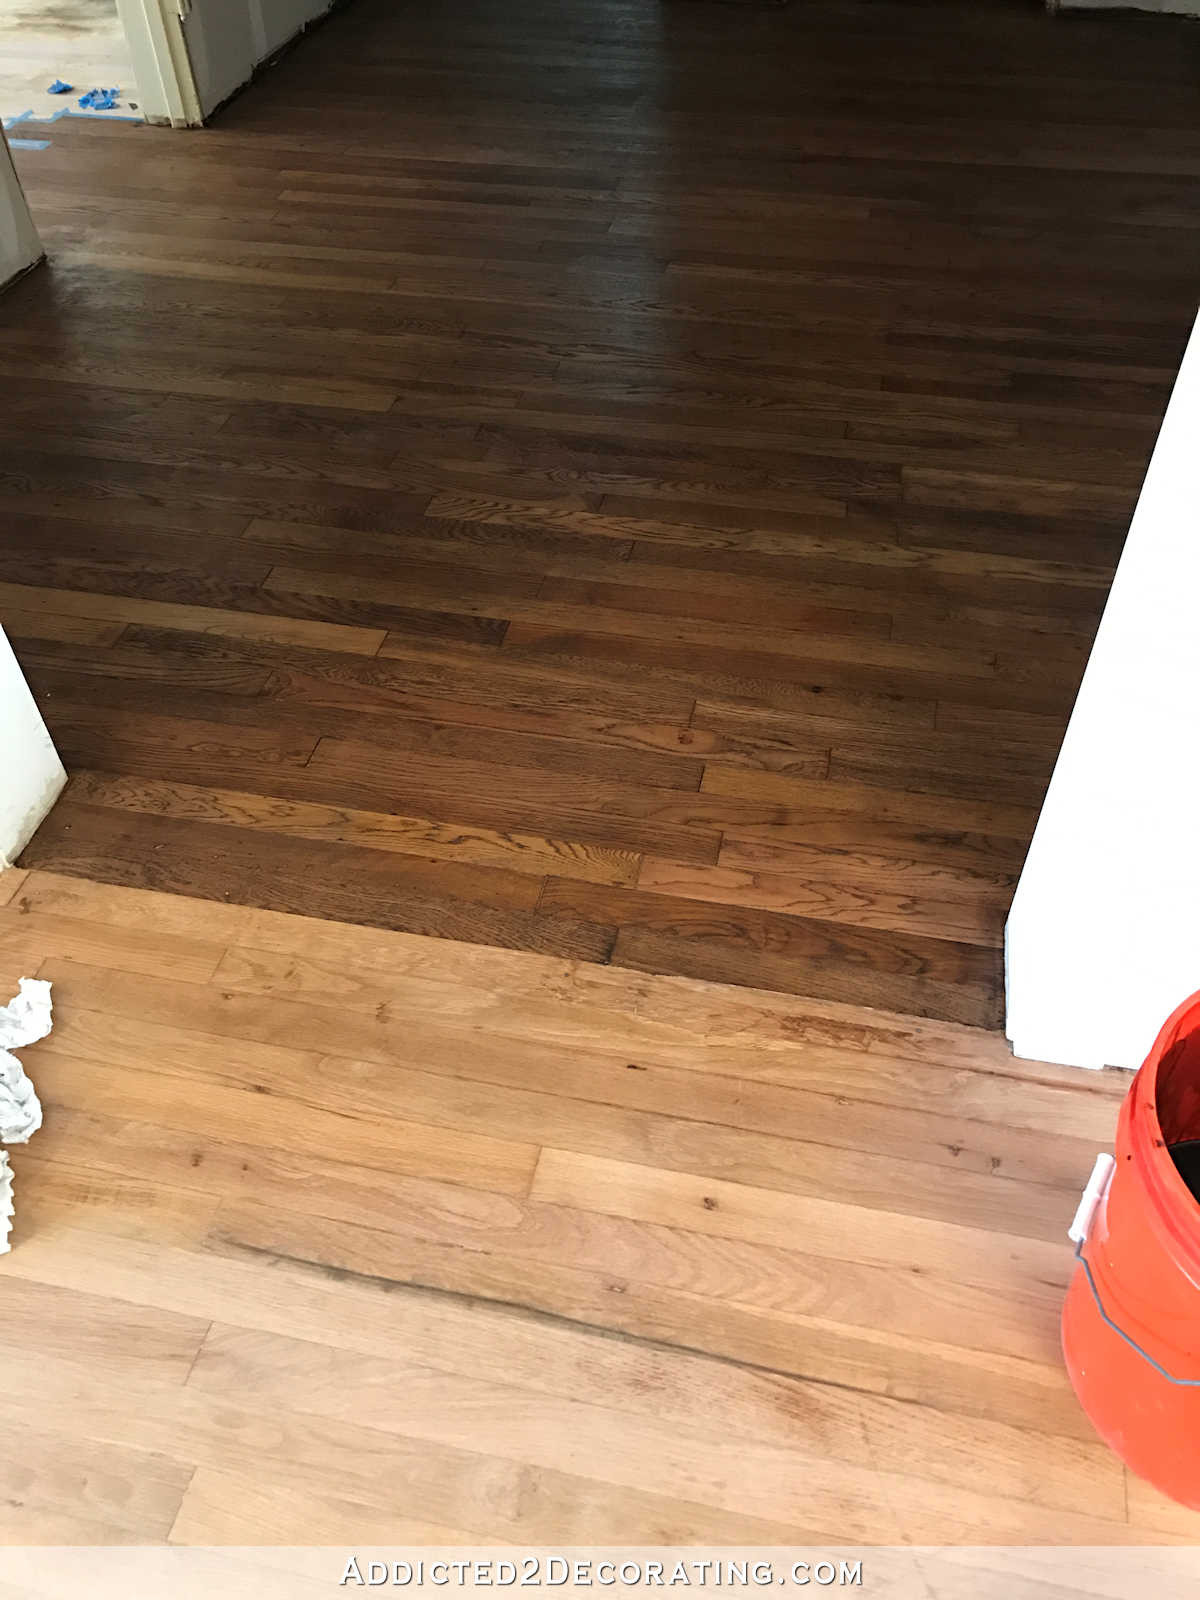 hardwood floor refinishing products of adventures in staining my red oak hardwood floors products process for staining red oak hardwood floors 2 tape off one section at a time for